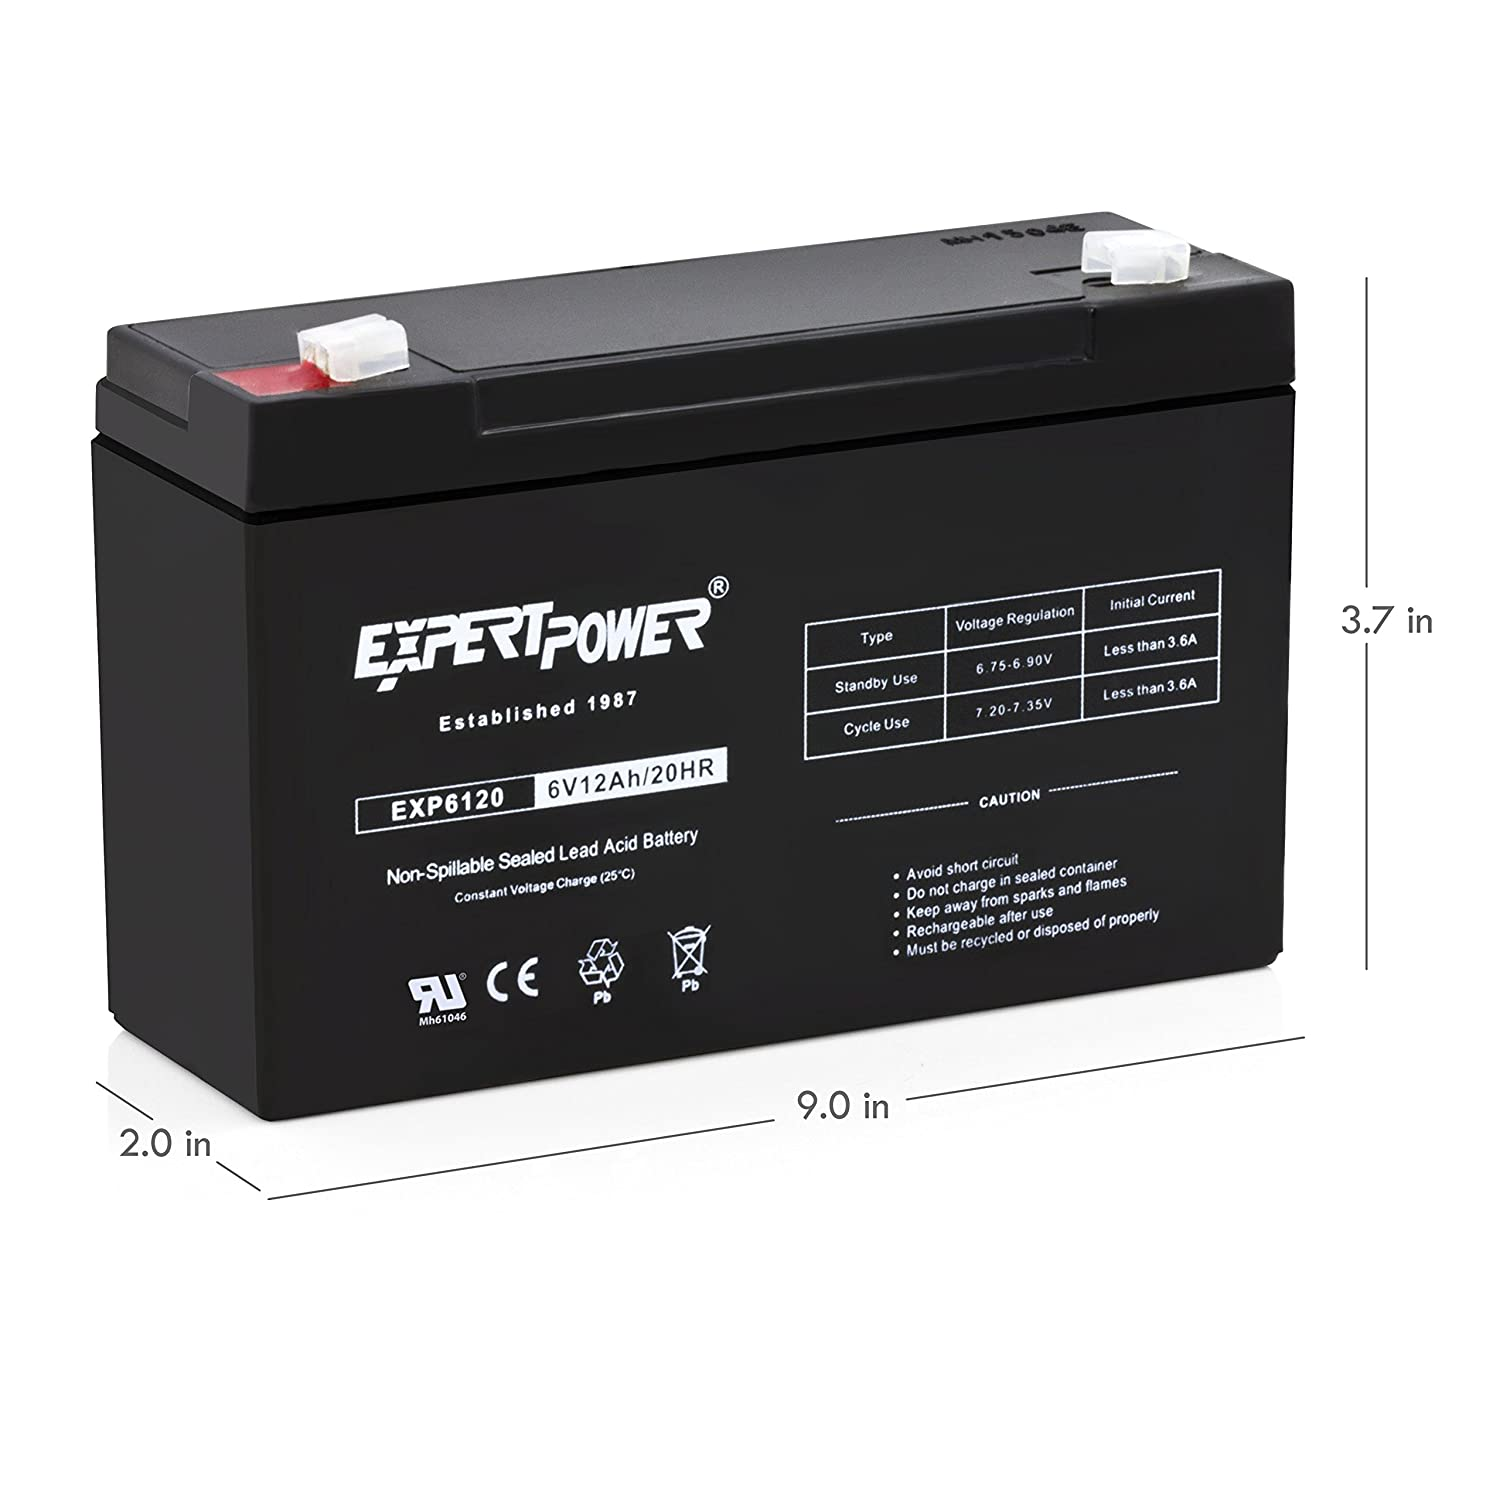 Amazon.com: ExpertPower EXP6120 6V 12Ah - 6 Volt 12 Amp SLA Sealed Lead  Acid Battery with F1 Terminals: Health & Personal Care